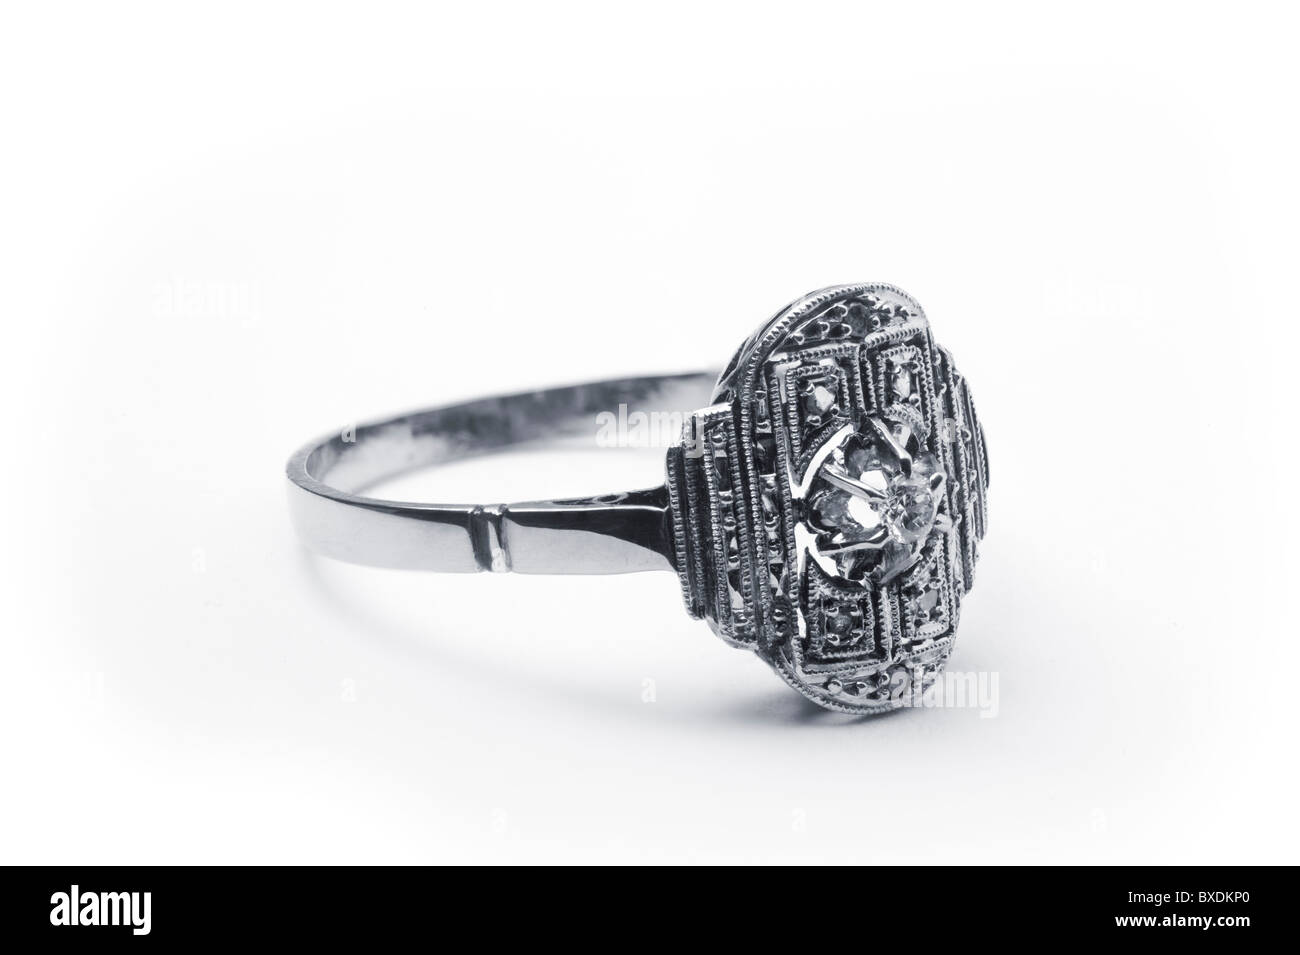 A platinum ring of the Art Deco style (France, circa 1930). Bague en platine de style Art Déco (France, environ - Stock Image